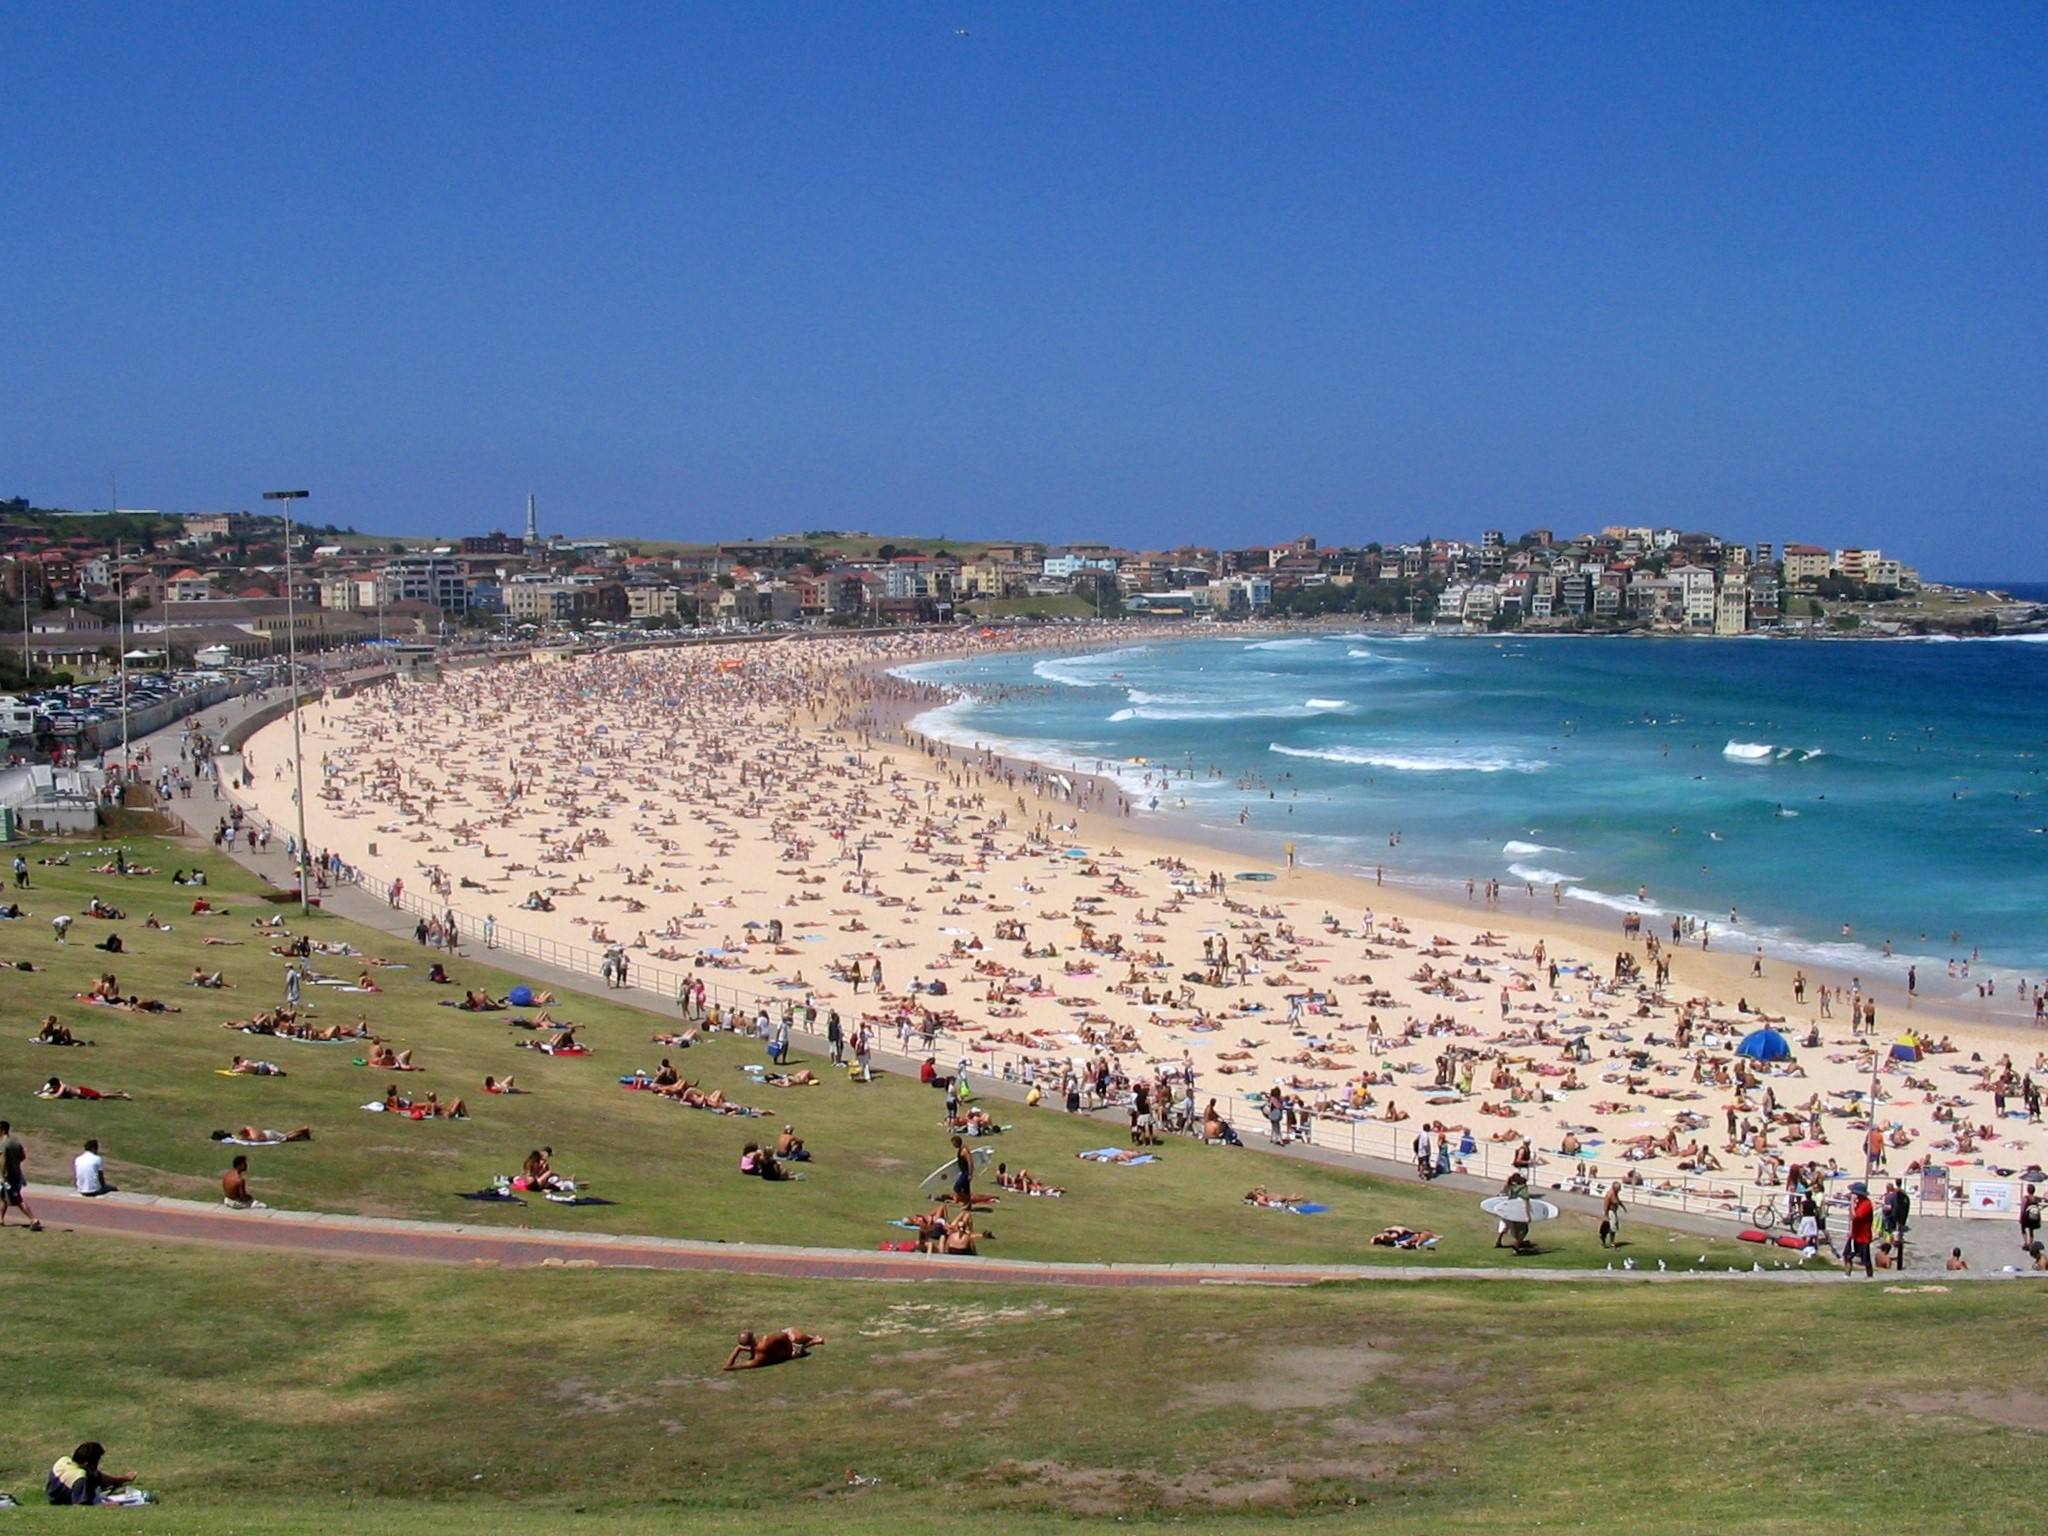 Bondi Beach By Andrea Schaffer from Sydney, Australia (Bondi beach  Uploaded by berichard) [CC-BY-2.0 (https://creativecommons.org/licenses/by/2.0)], via Wikimedia Commons